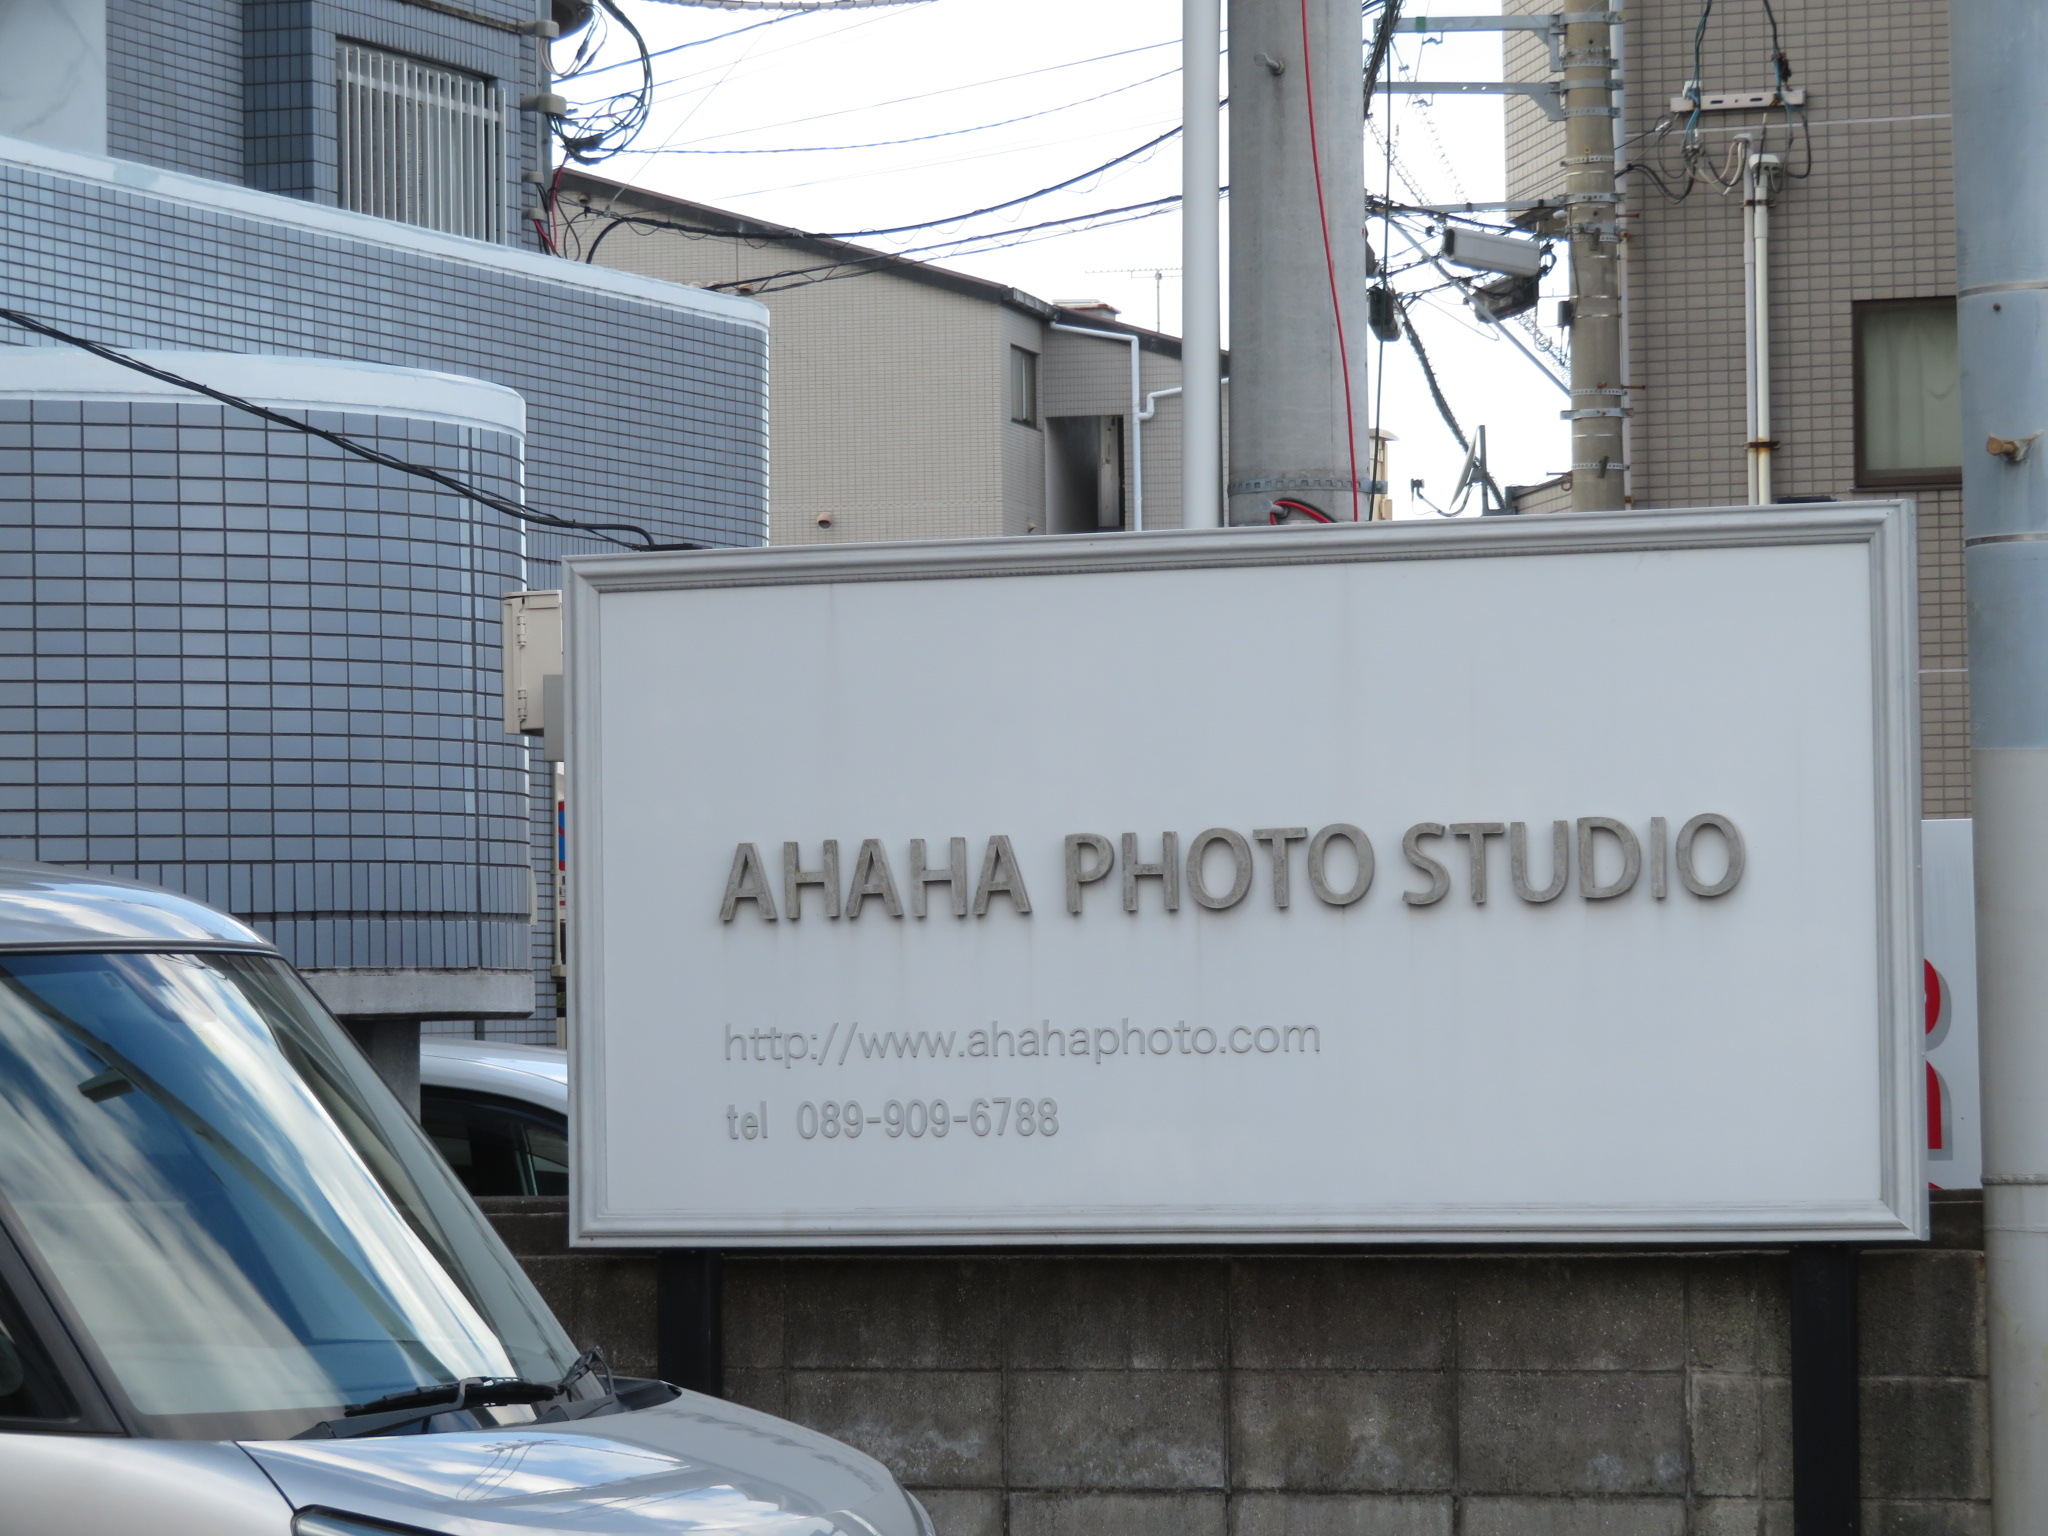 画像:AHAHA PHOTO STUDIO